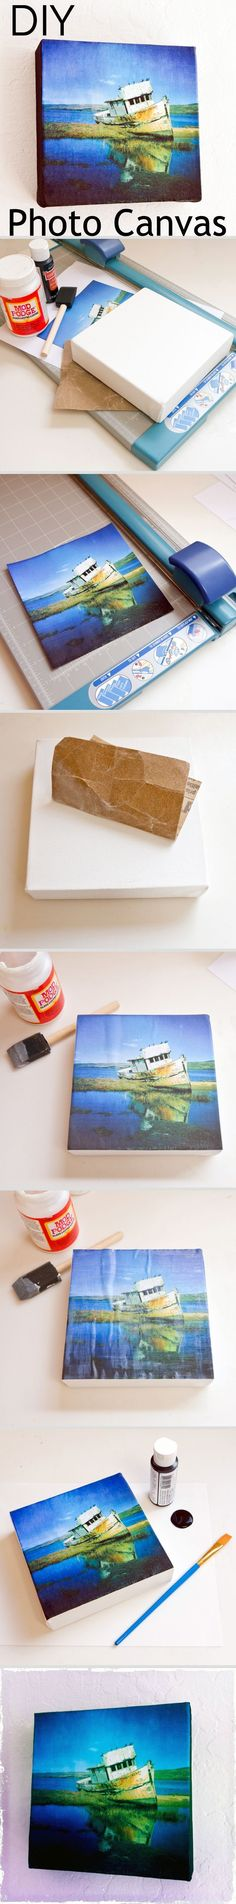 Make your own photo canvas prints to save money.  #instagram photos are great for this!